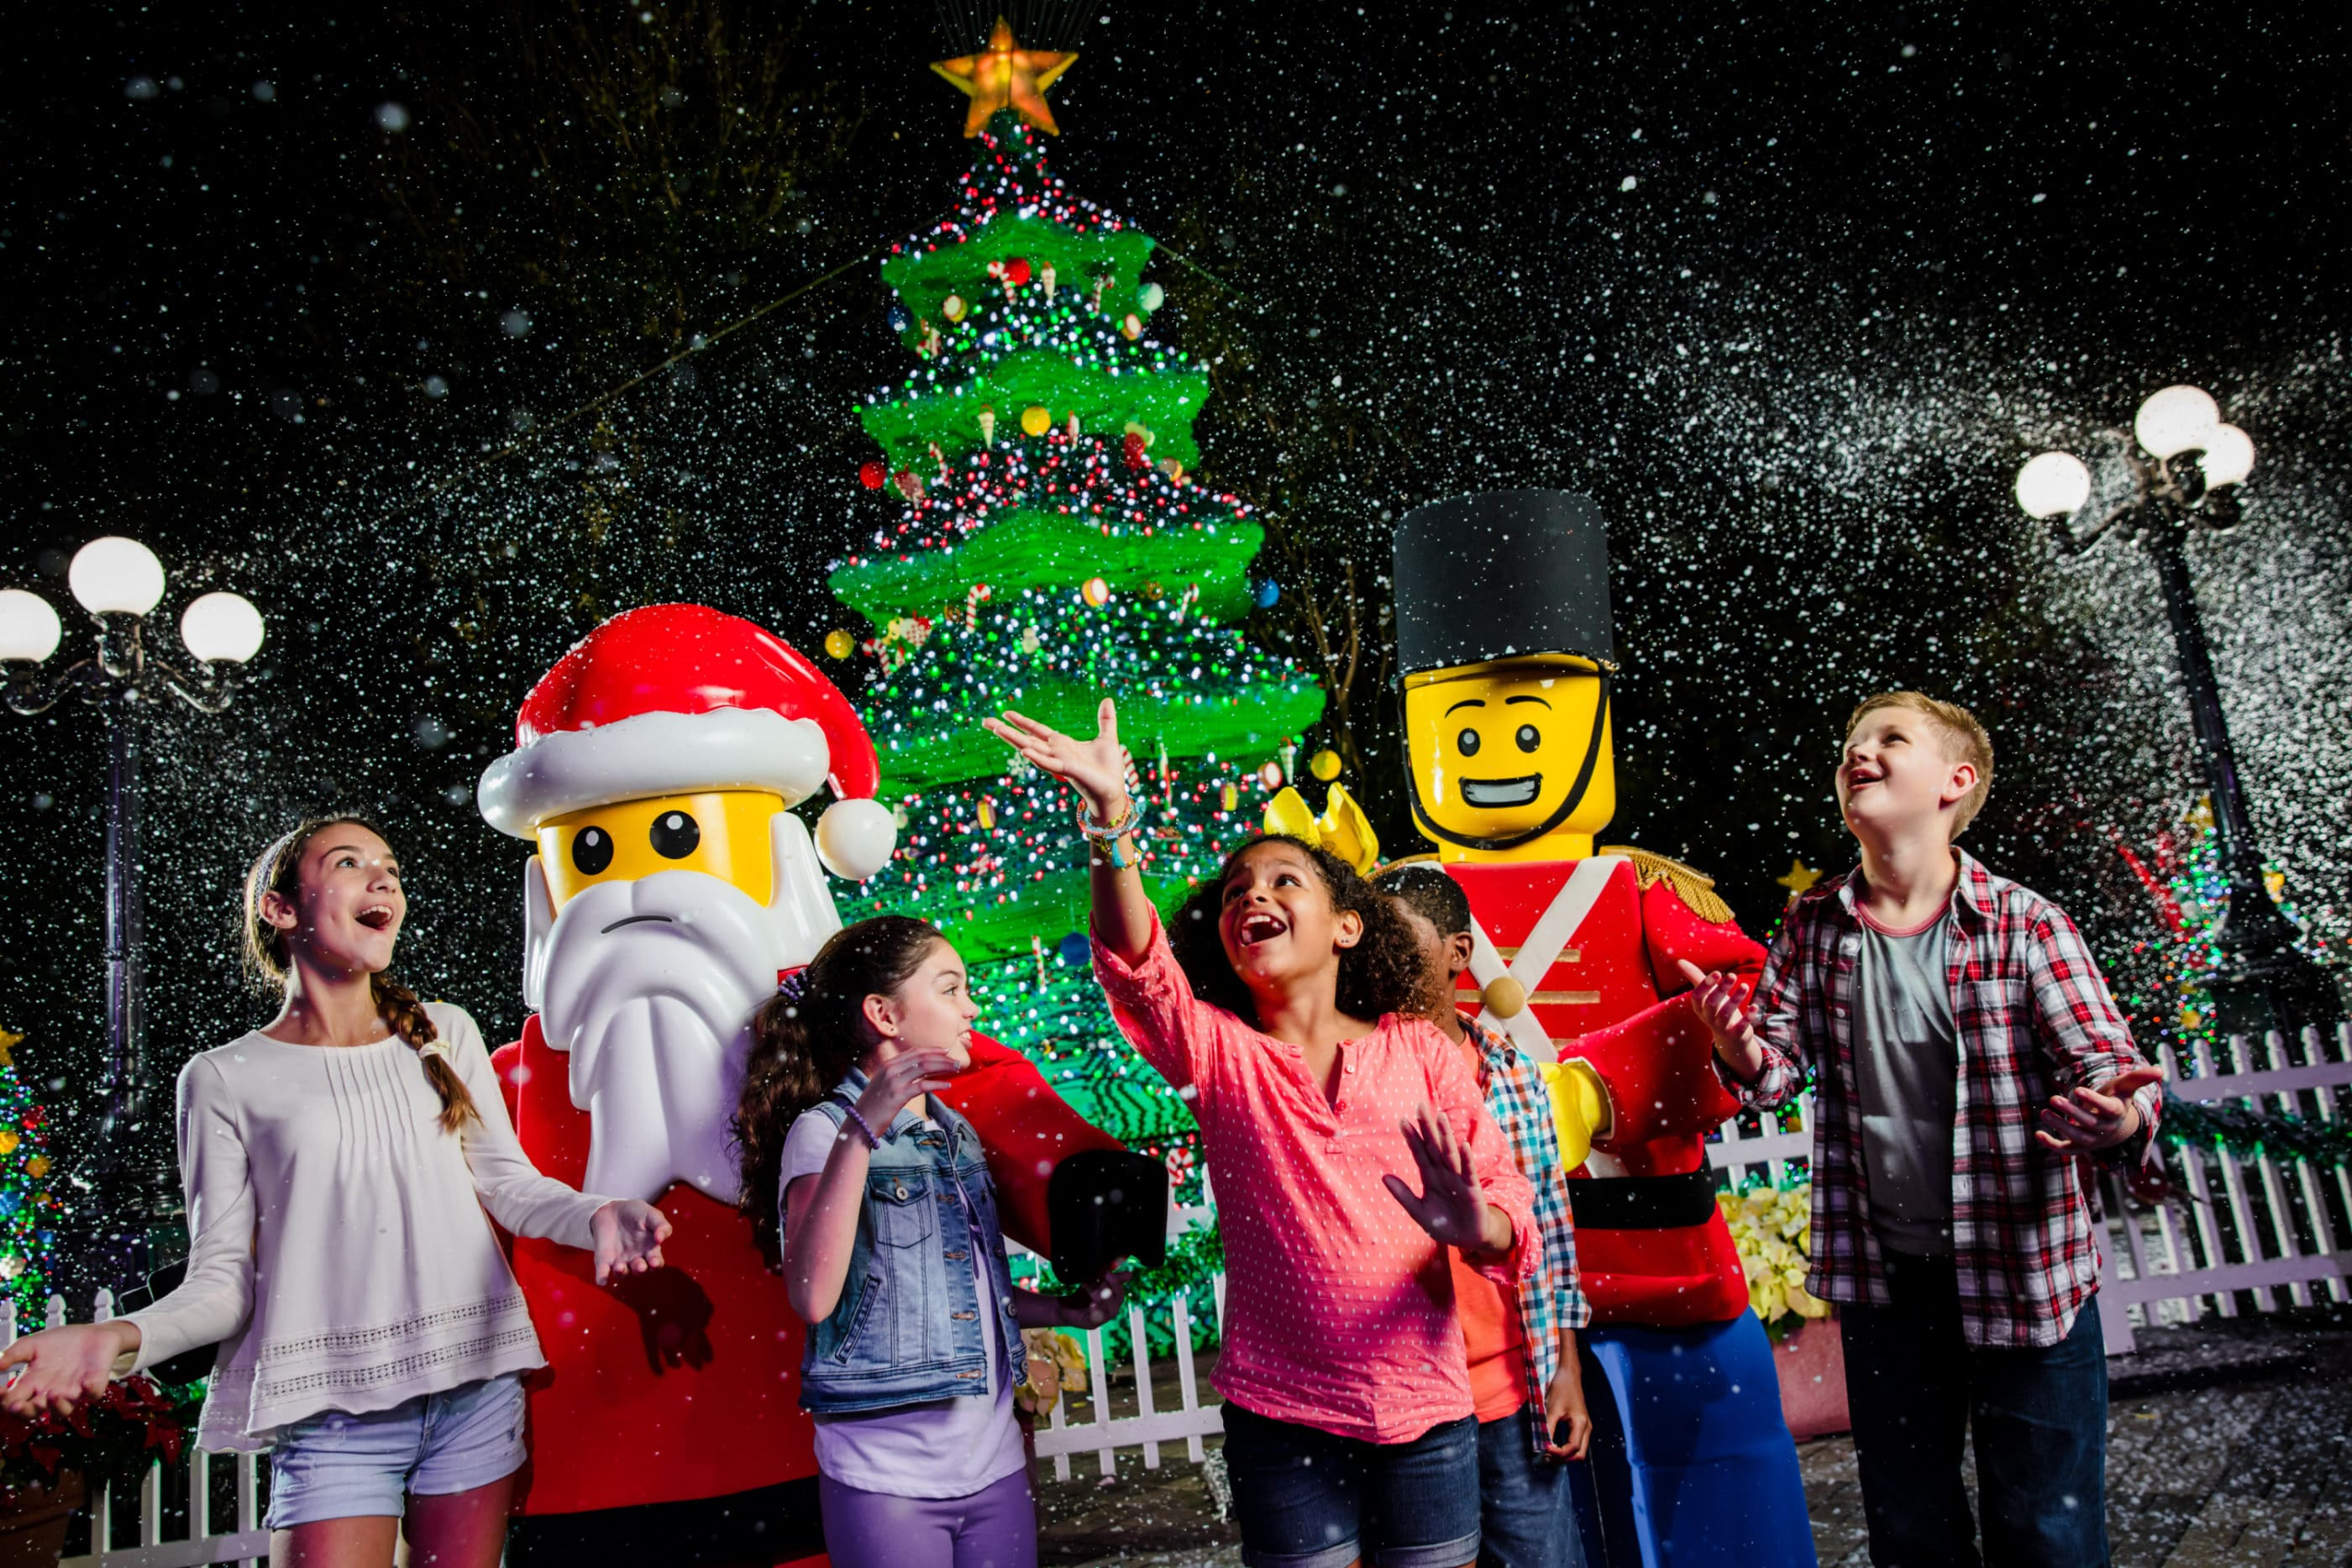 Kids stand next to LEGO Santa in front of the LEGO Christmas tree at night.